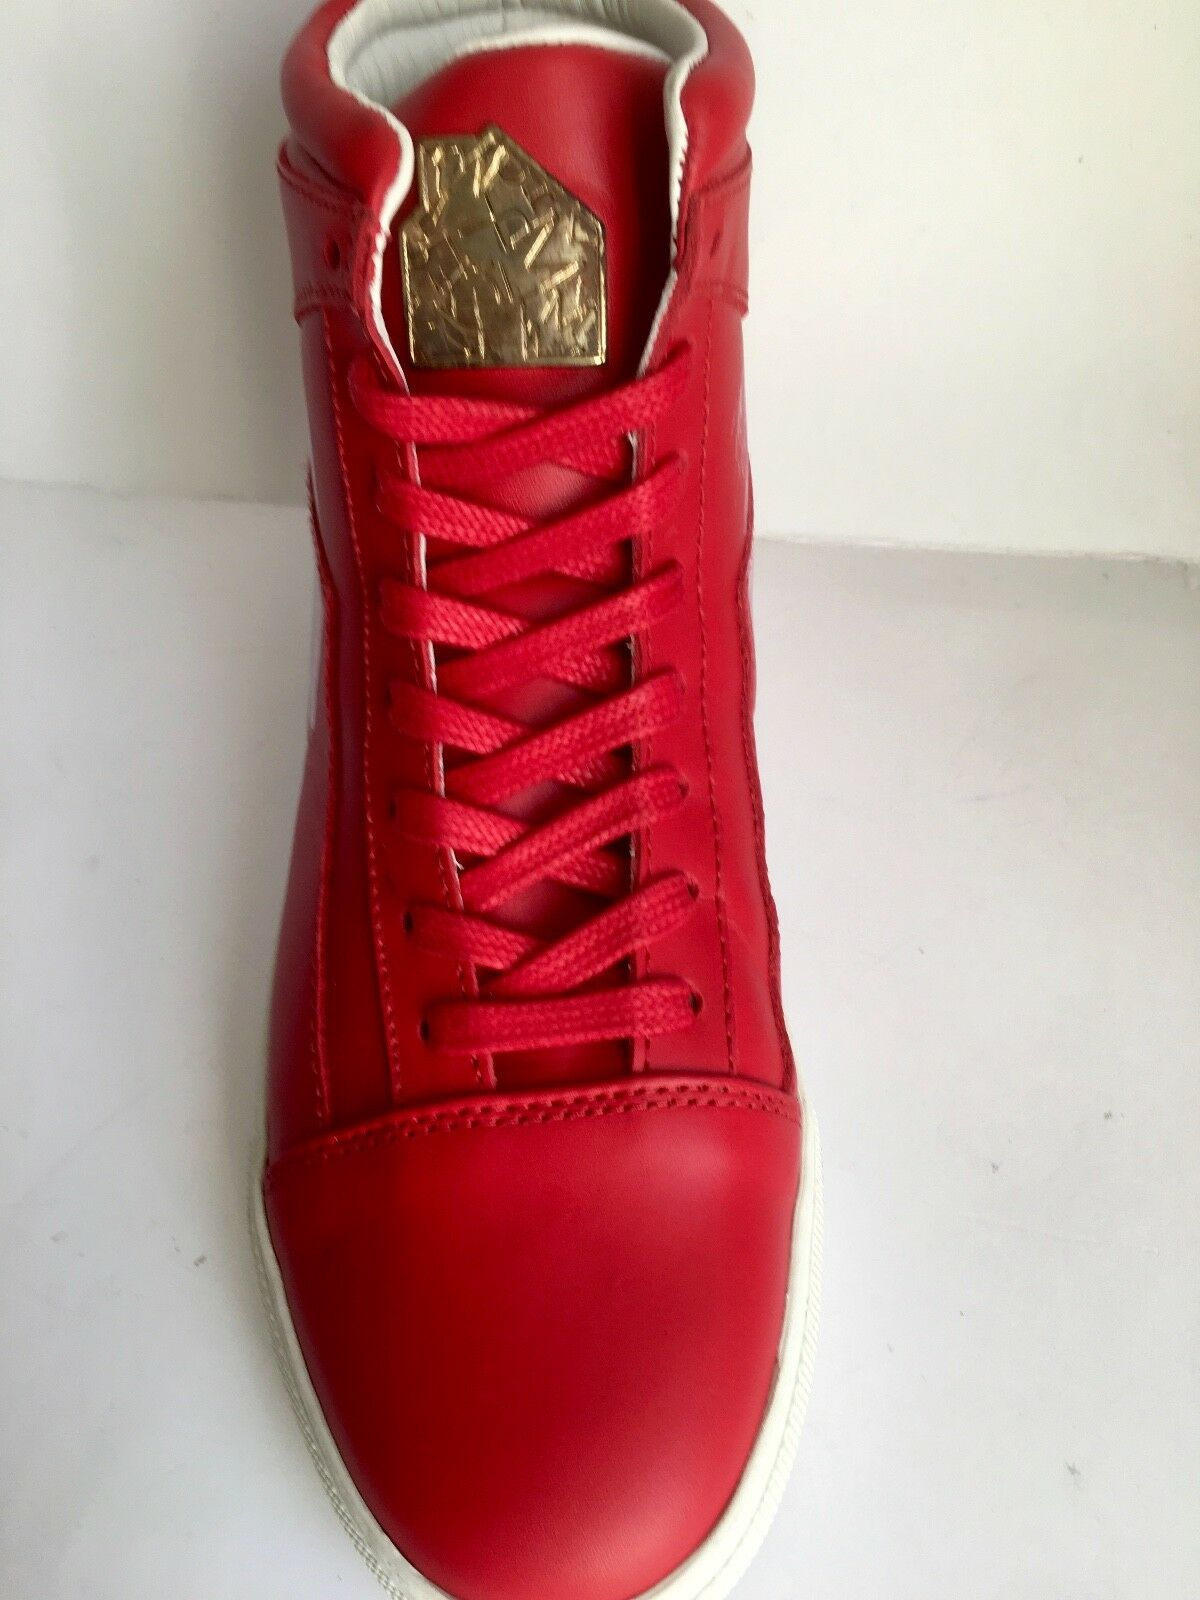 L'HOMME DE MAISON BY BRIAN NICKSON ETIENNE RED HIGH TOP SNEAKERS  9 RRP250£